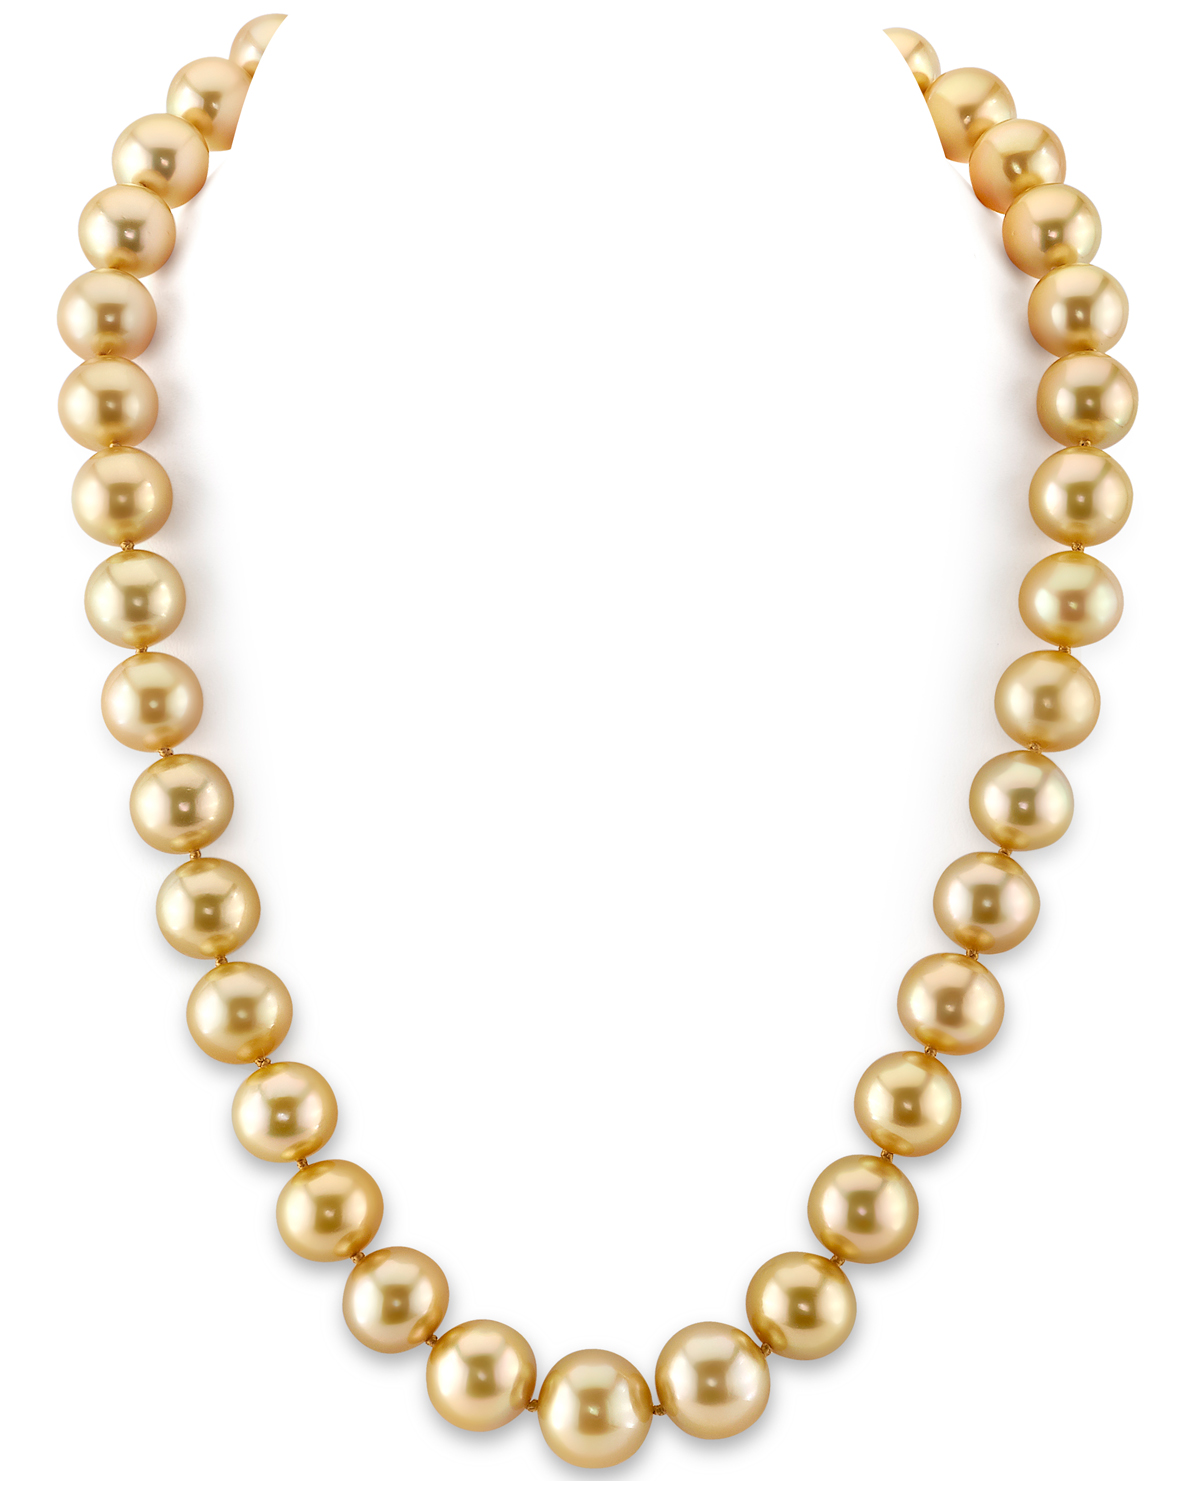 11-13mm Golden South Sea Pearl Necklace - AAA Quality